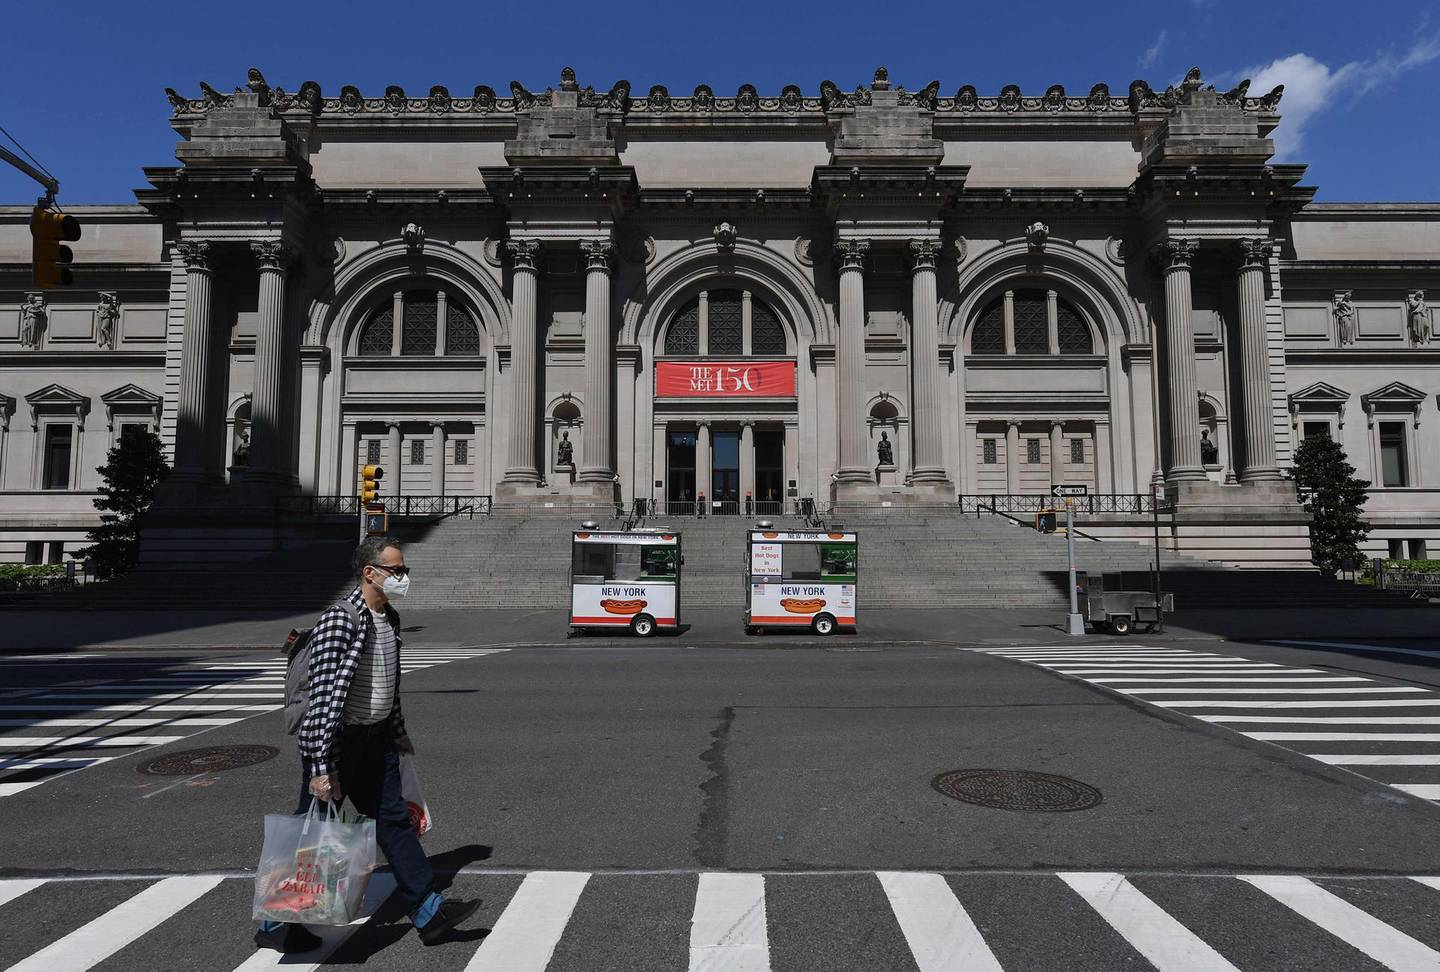 """(FILES) In this file photo taken on May 4, 2020 a man wearing a facemask walks past the Metropolitan Museum of Art """"The Met"""" in New York City.  New York's Metropolitan Museum plans to reopen in mid-August, """"or maybe a few weeks later,"""" with reduced hours and no tours to maintain social distancing, the museum said on May 19, 2020. / AFP / Angela Weiss"""